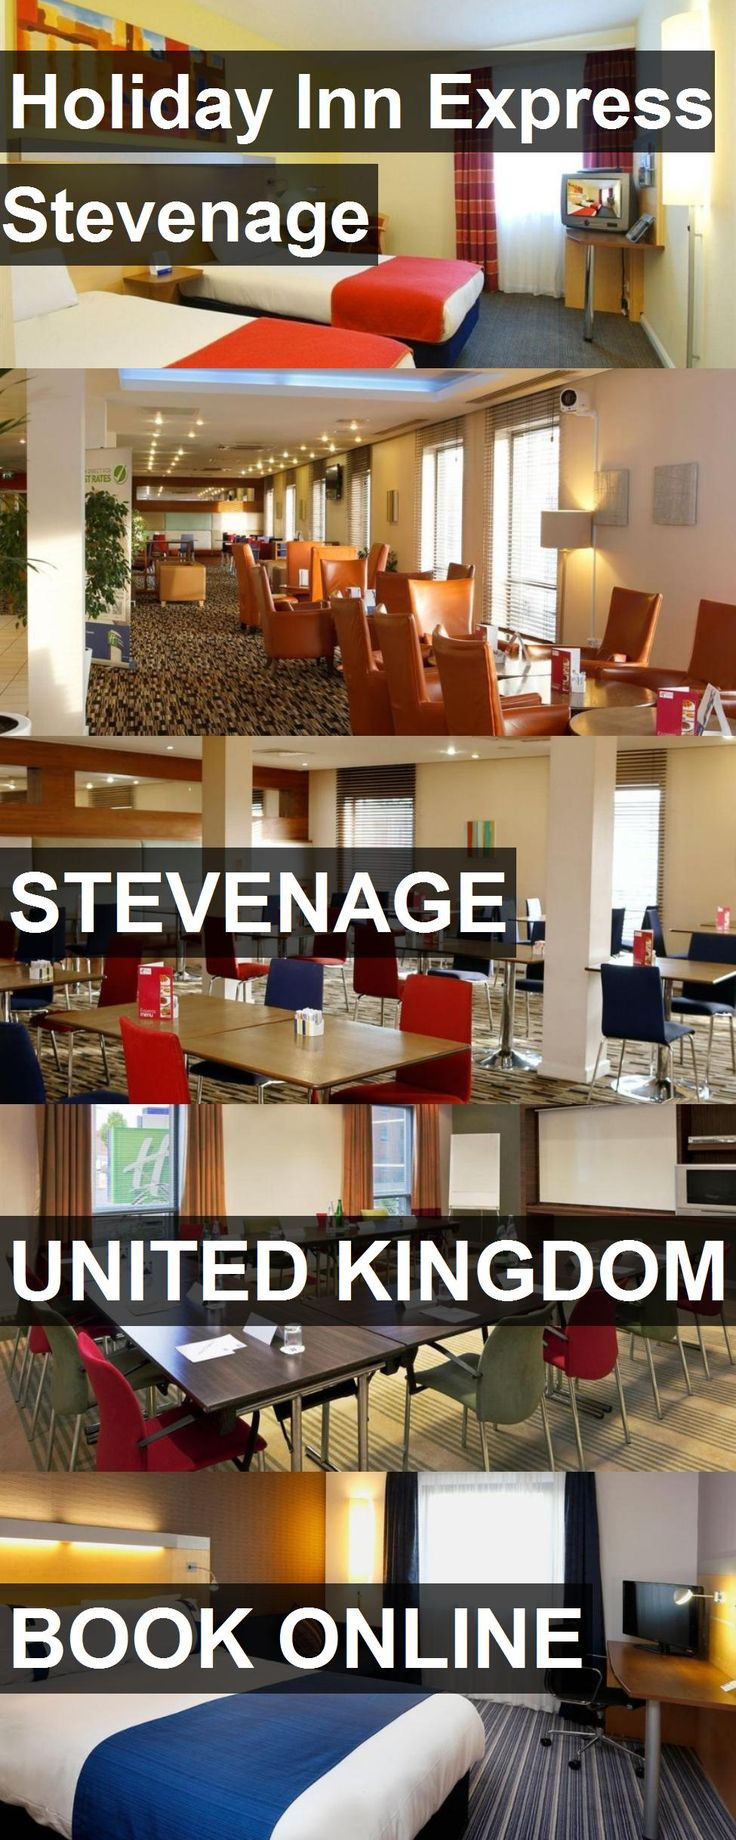 Hotel Holiday Inn Express Stevenage in Stevenage, United Kingdom. For more information, photos, reviews and best prices please follow the link. #UnitedKingdom #Stevenage #travel #vacation #hotel